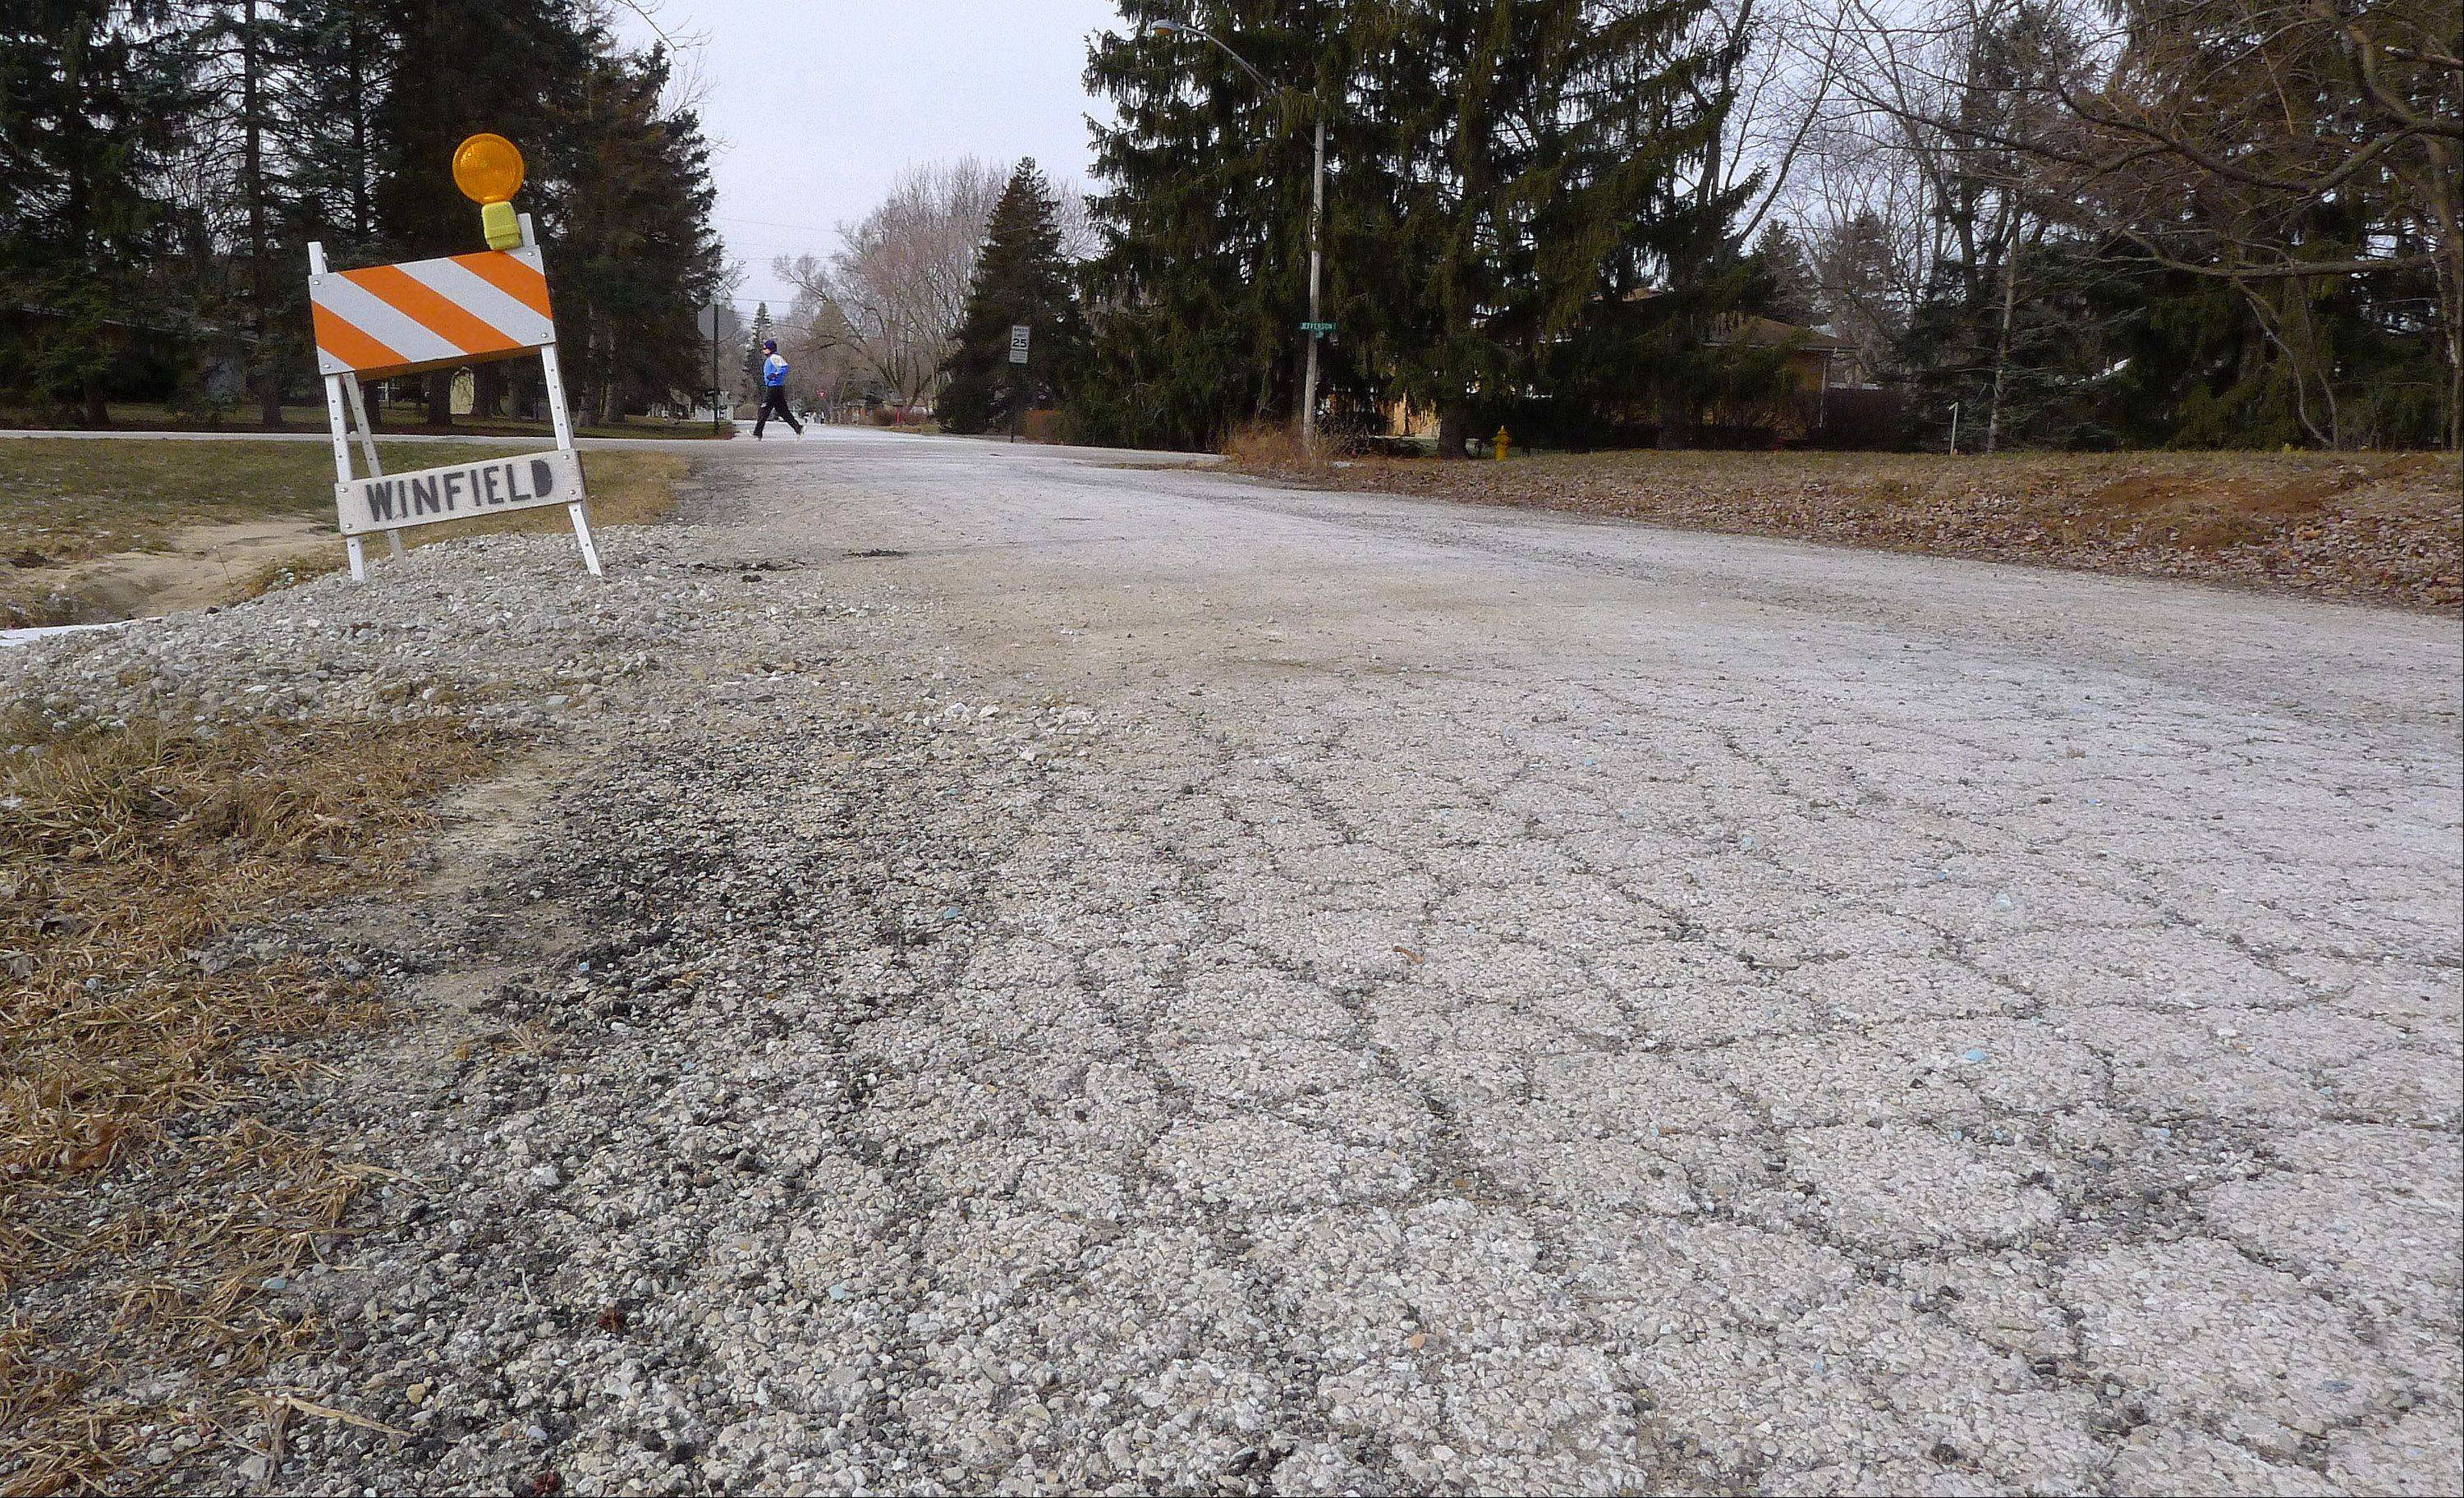 Winfield trustees are considering a plan to borrow $4 million to repair nearly 30 percent of the village's streets, which officials say are in poor to failing condition.